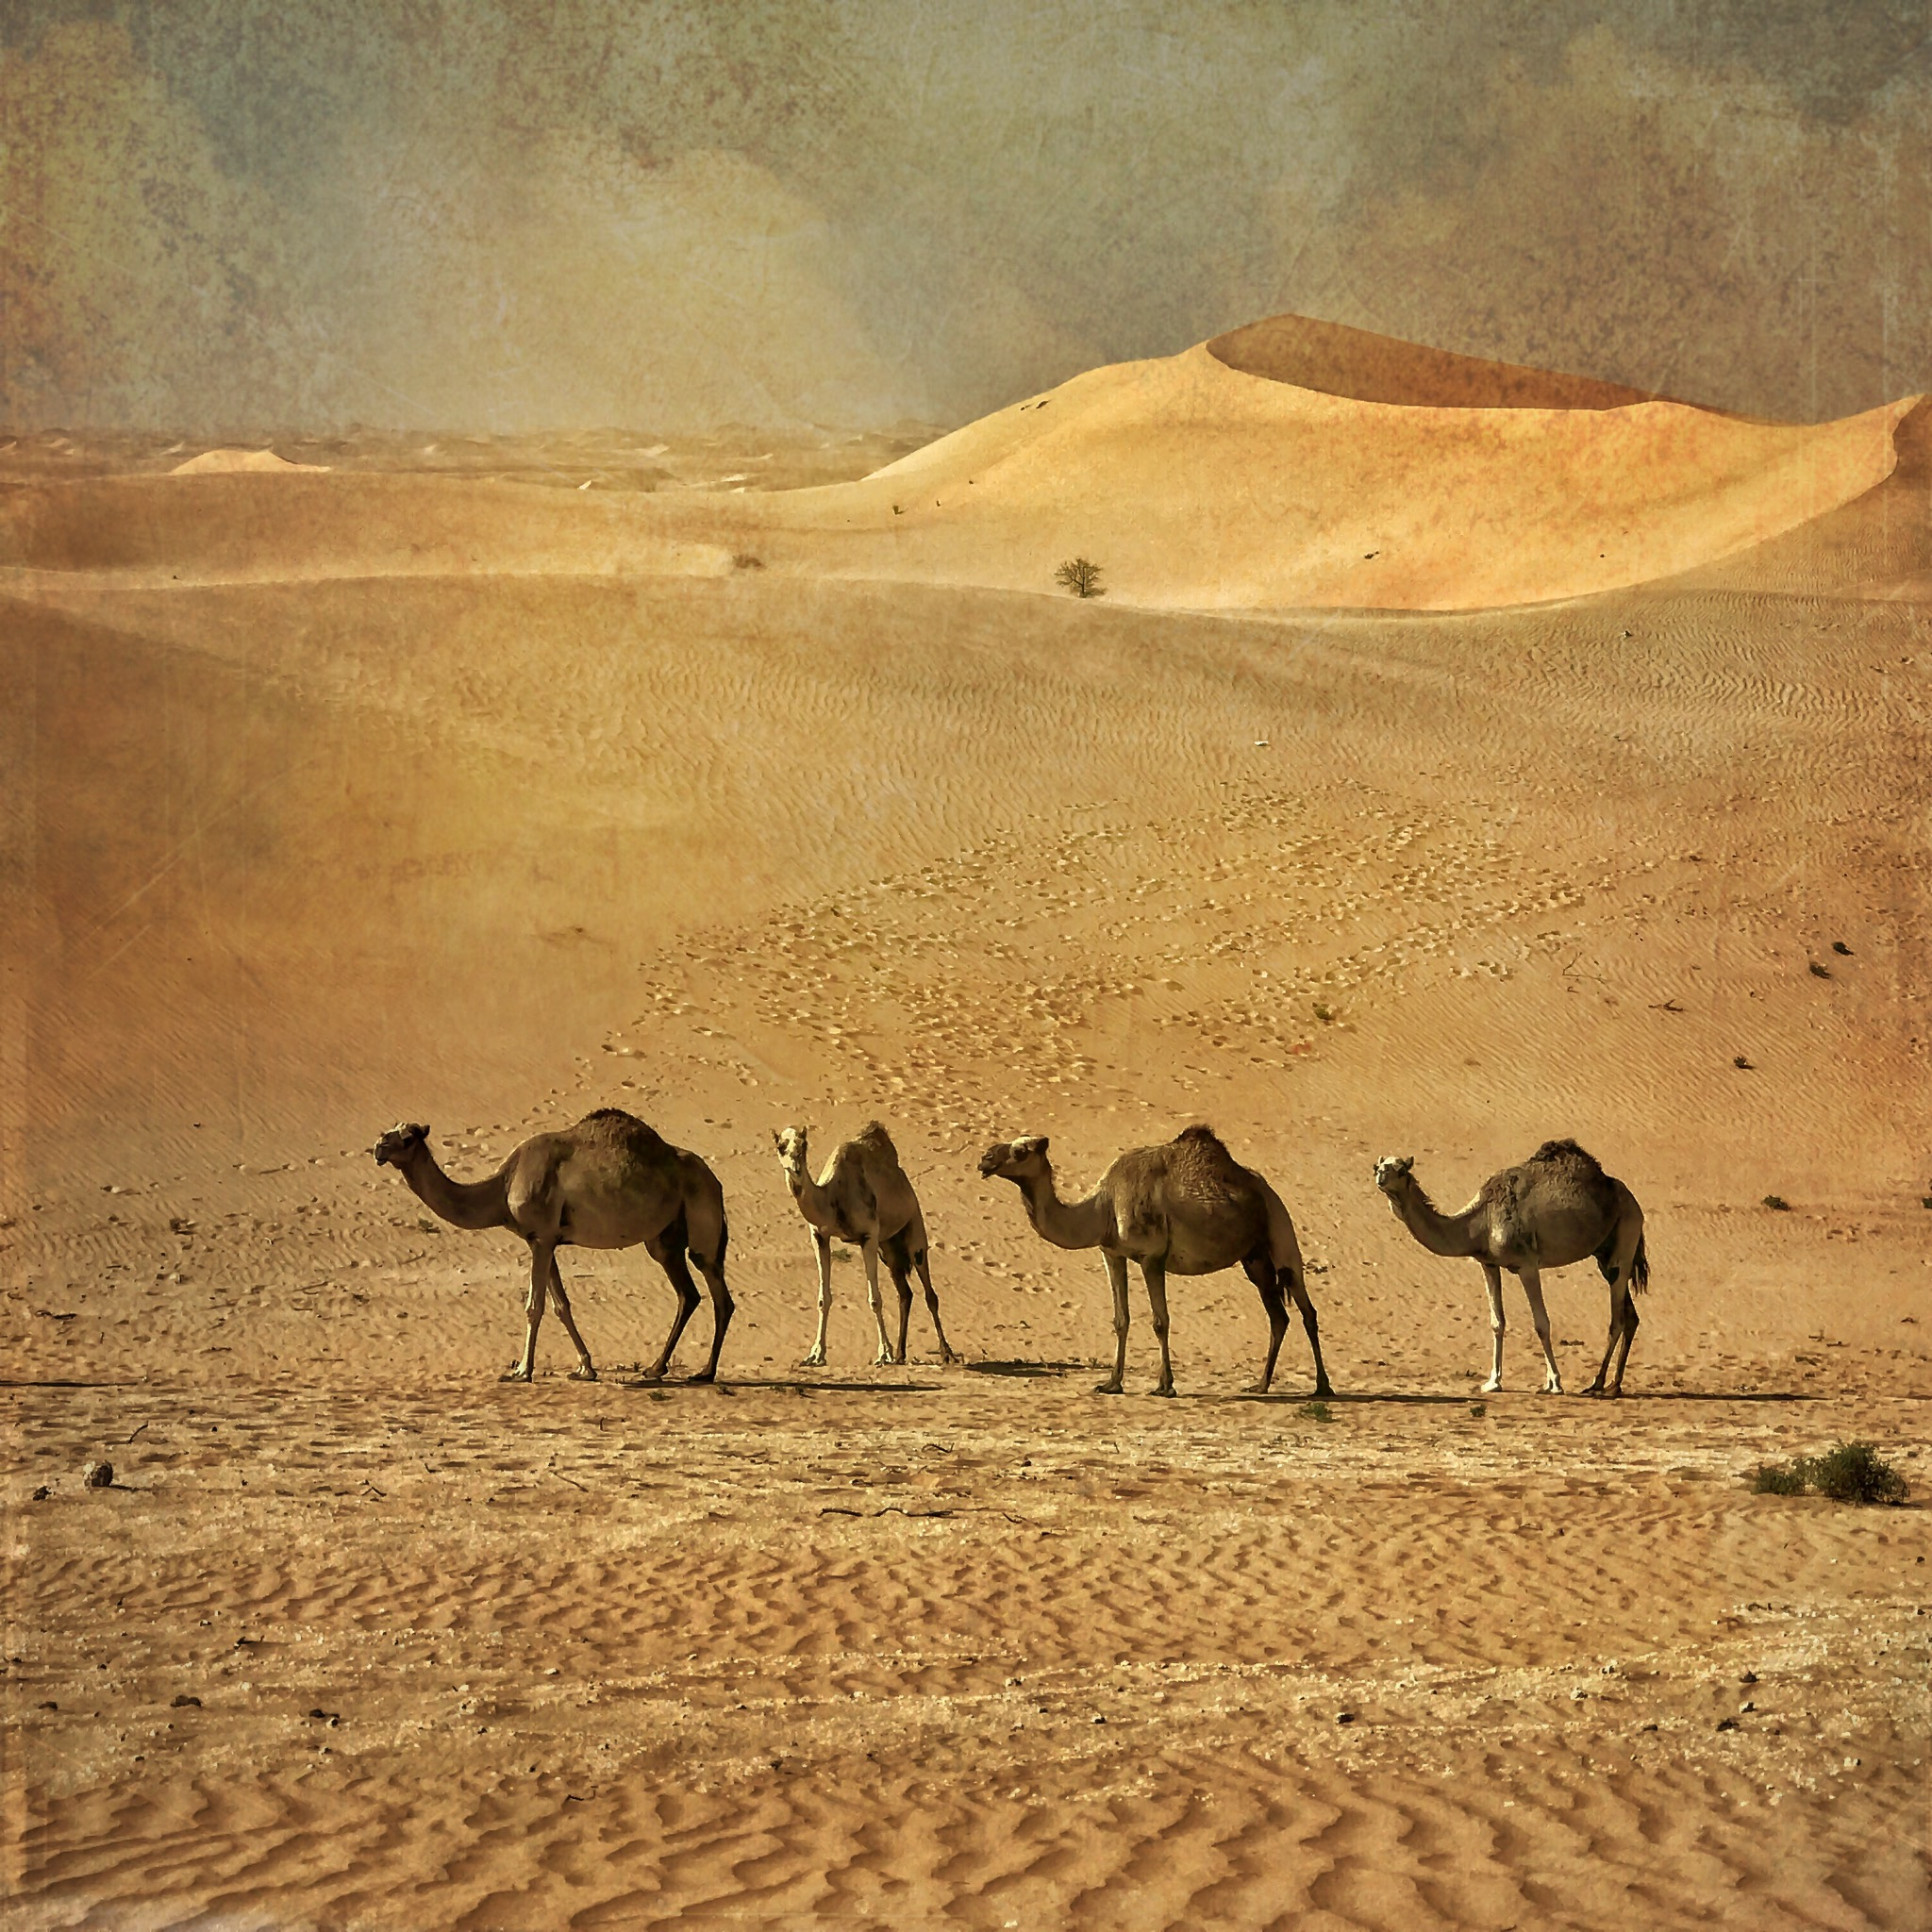 Desert Camels near Abu Dhabi  [Photo Credit: Rad A. Drew]